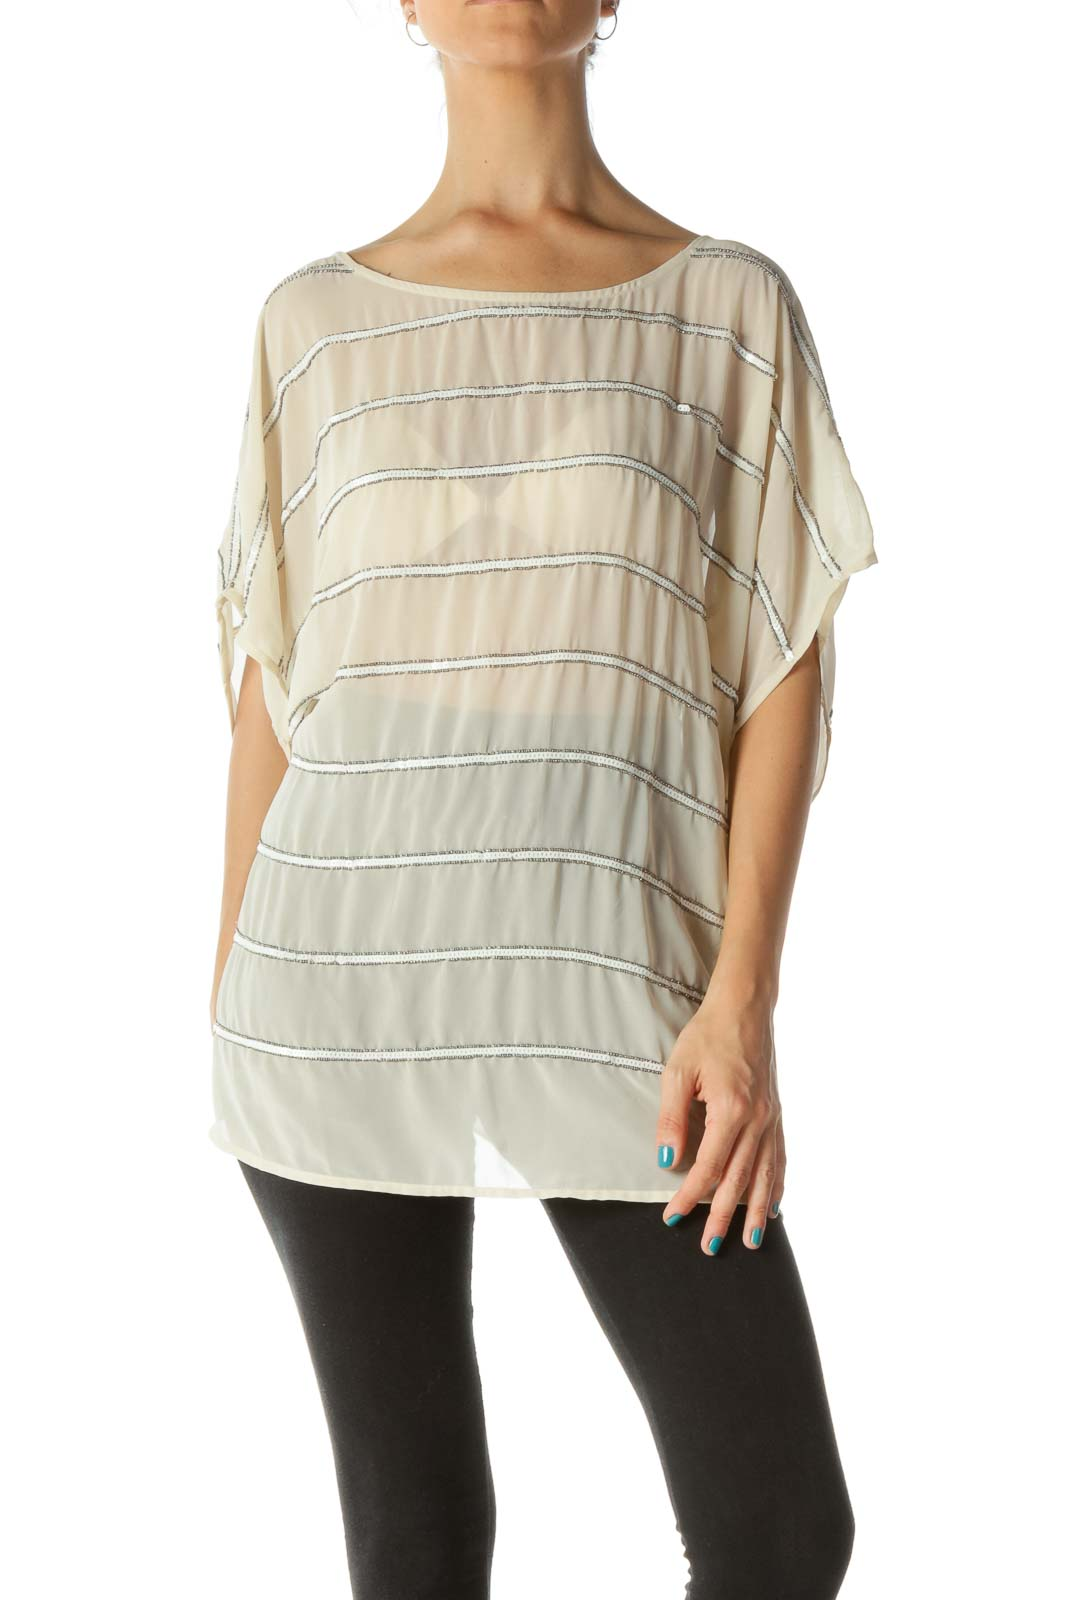 Beige Beaded and Sequined See Through Blouse